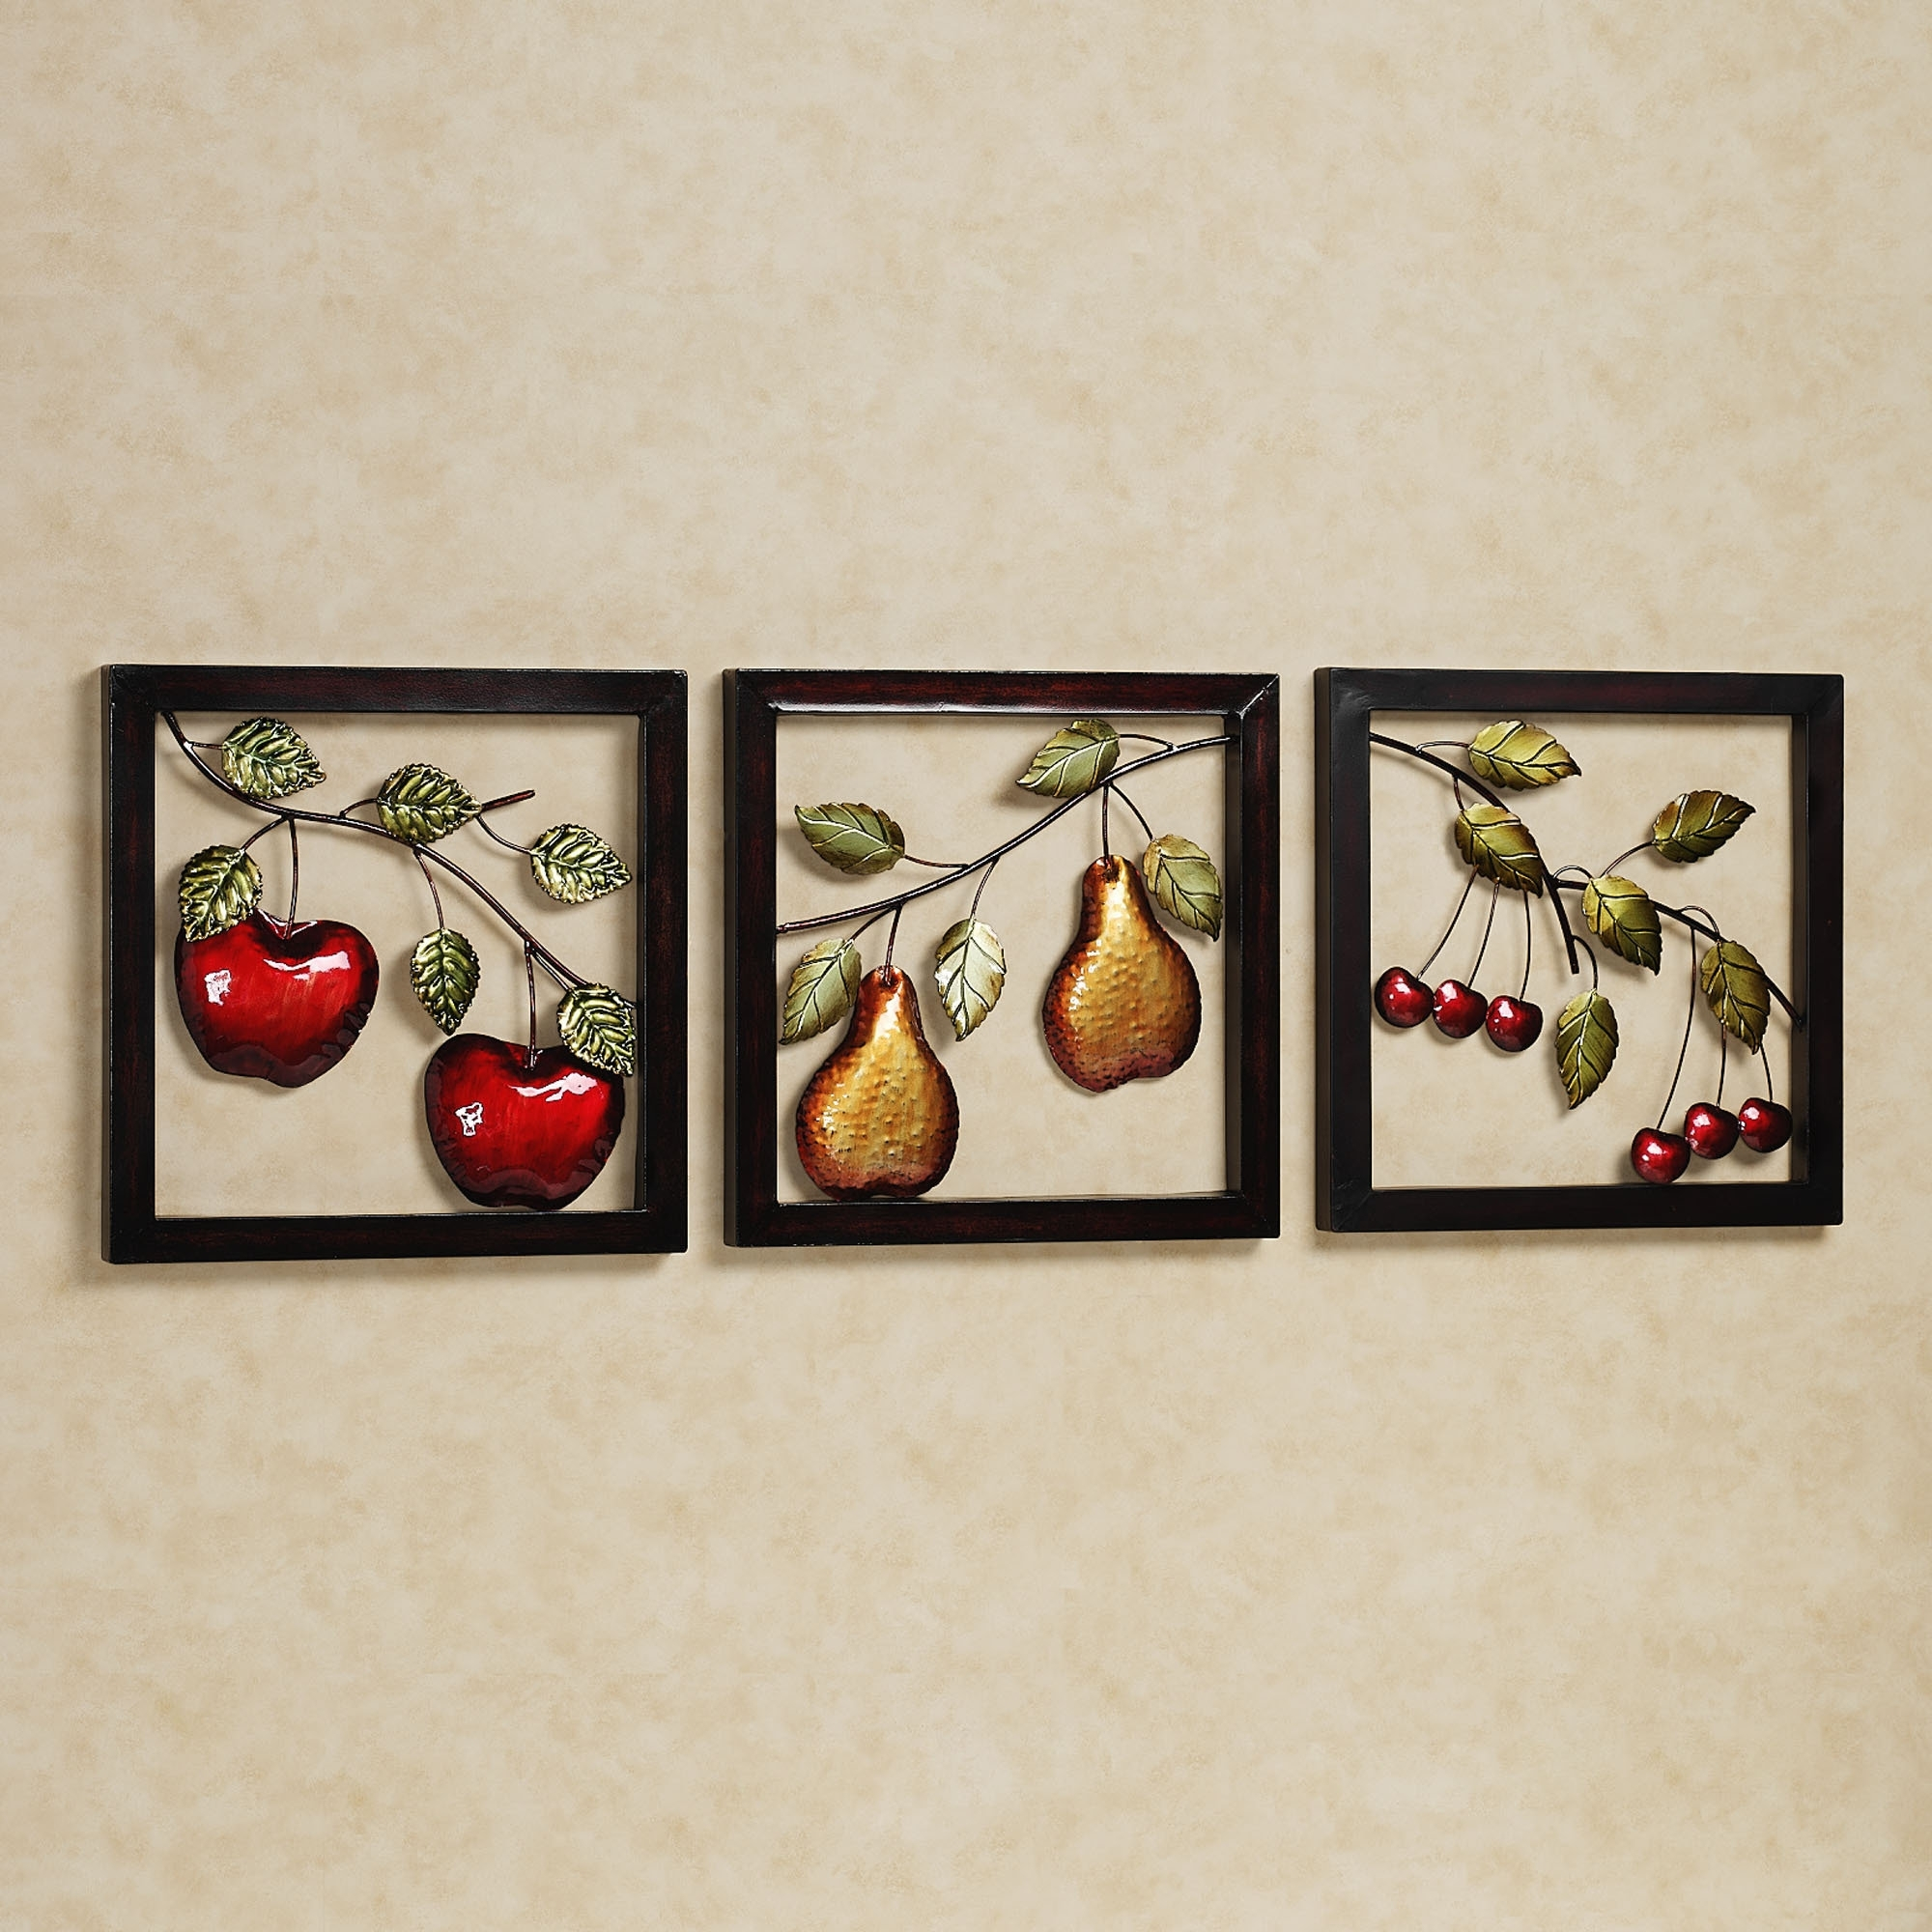 Beautiful Fruits Metal Wall Art Decor Kitchen With Black Frame Ideas Inside Current Wall Art For Kitchen (Gallery 15 of 20)